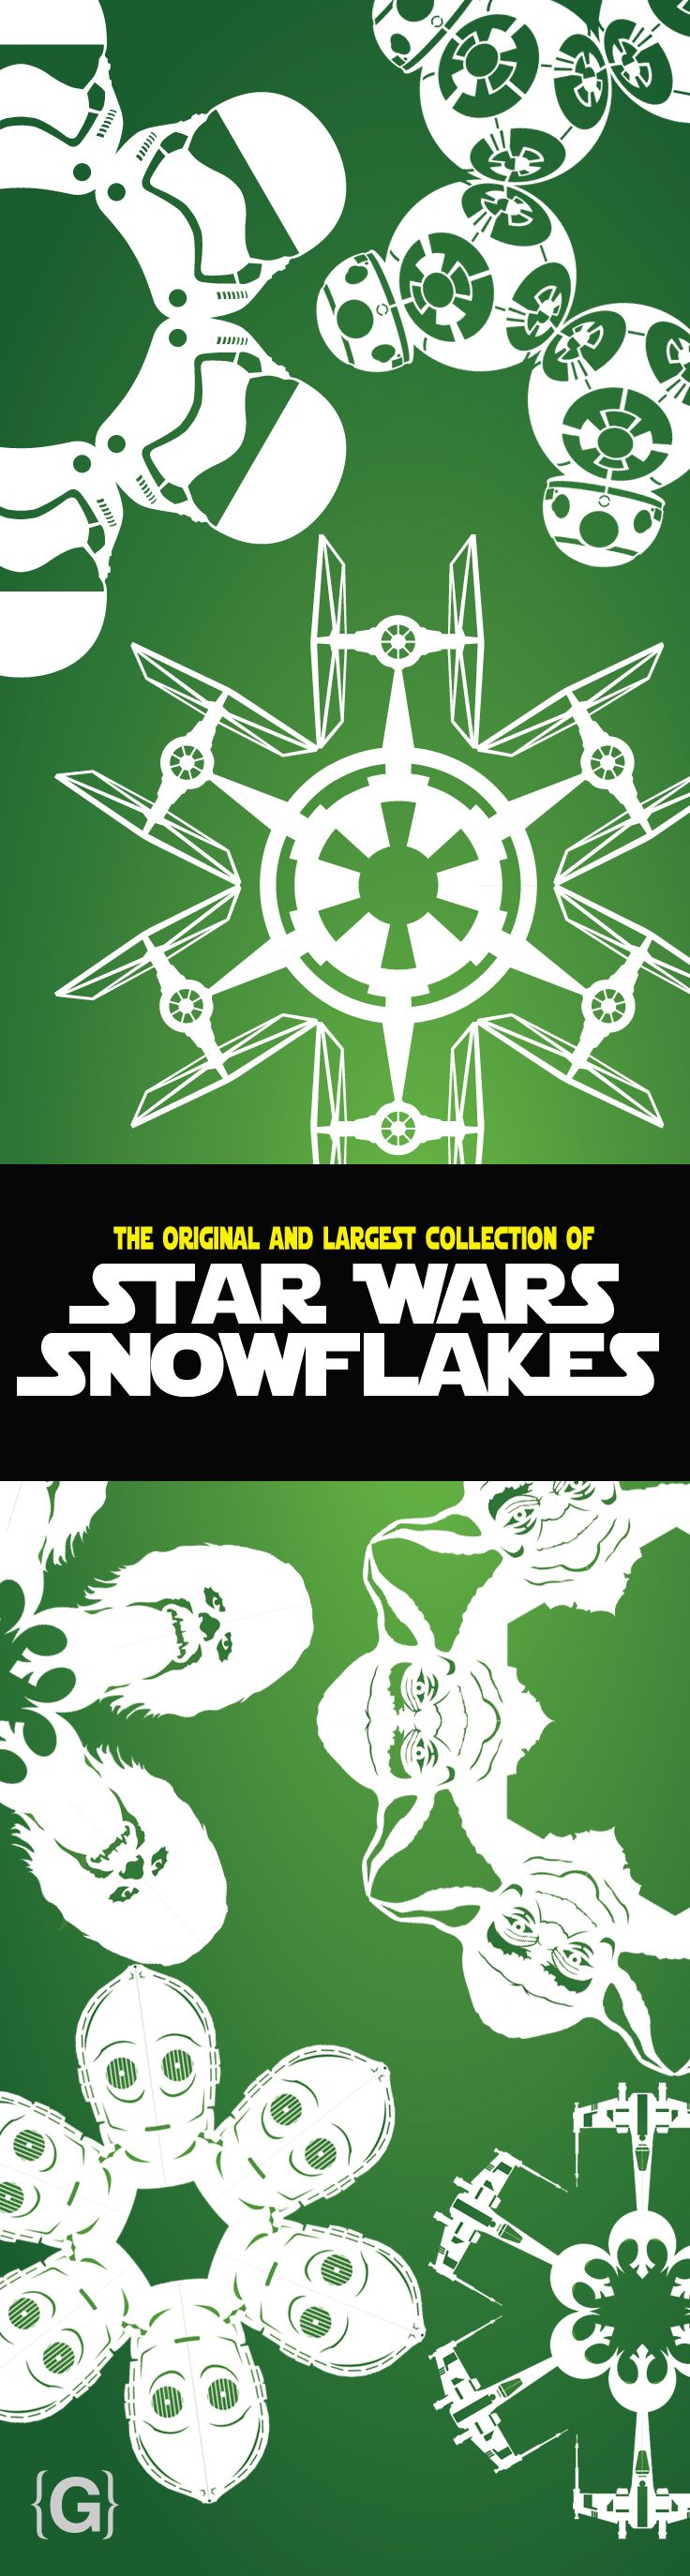 the original and largest collection of star wars snowflakes. Download the DIY paper templates today